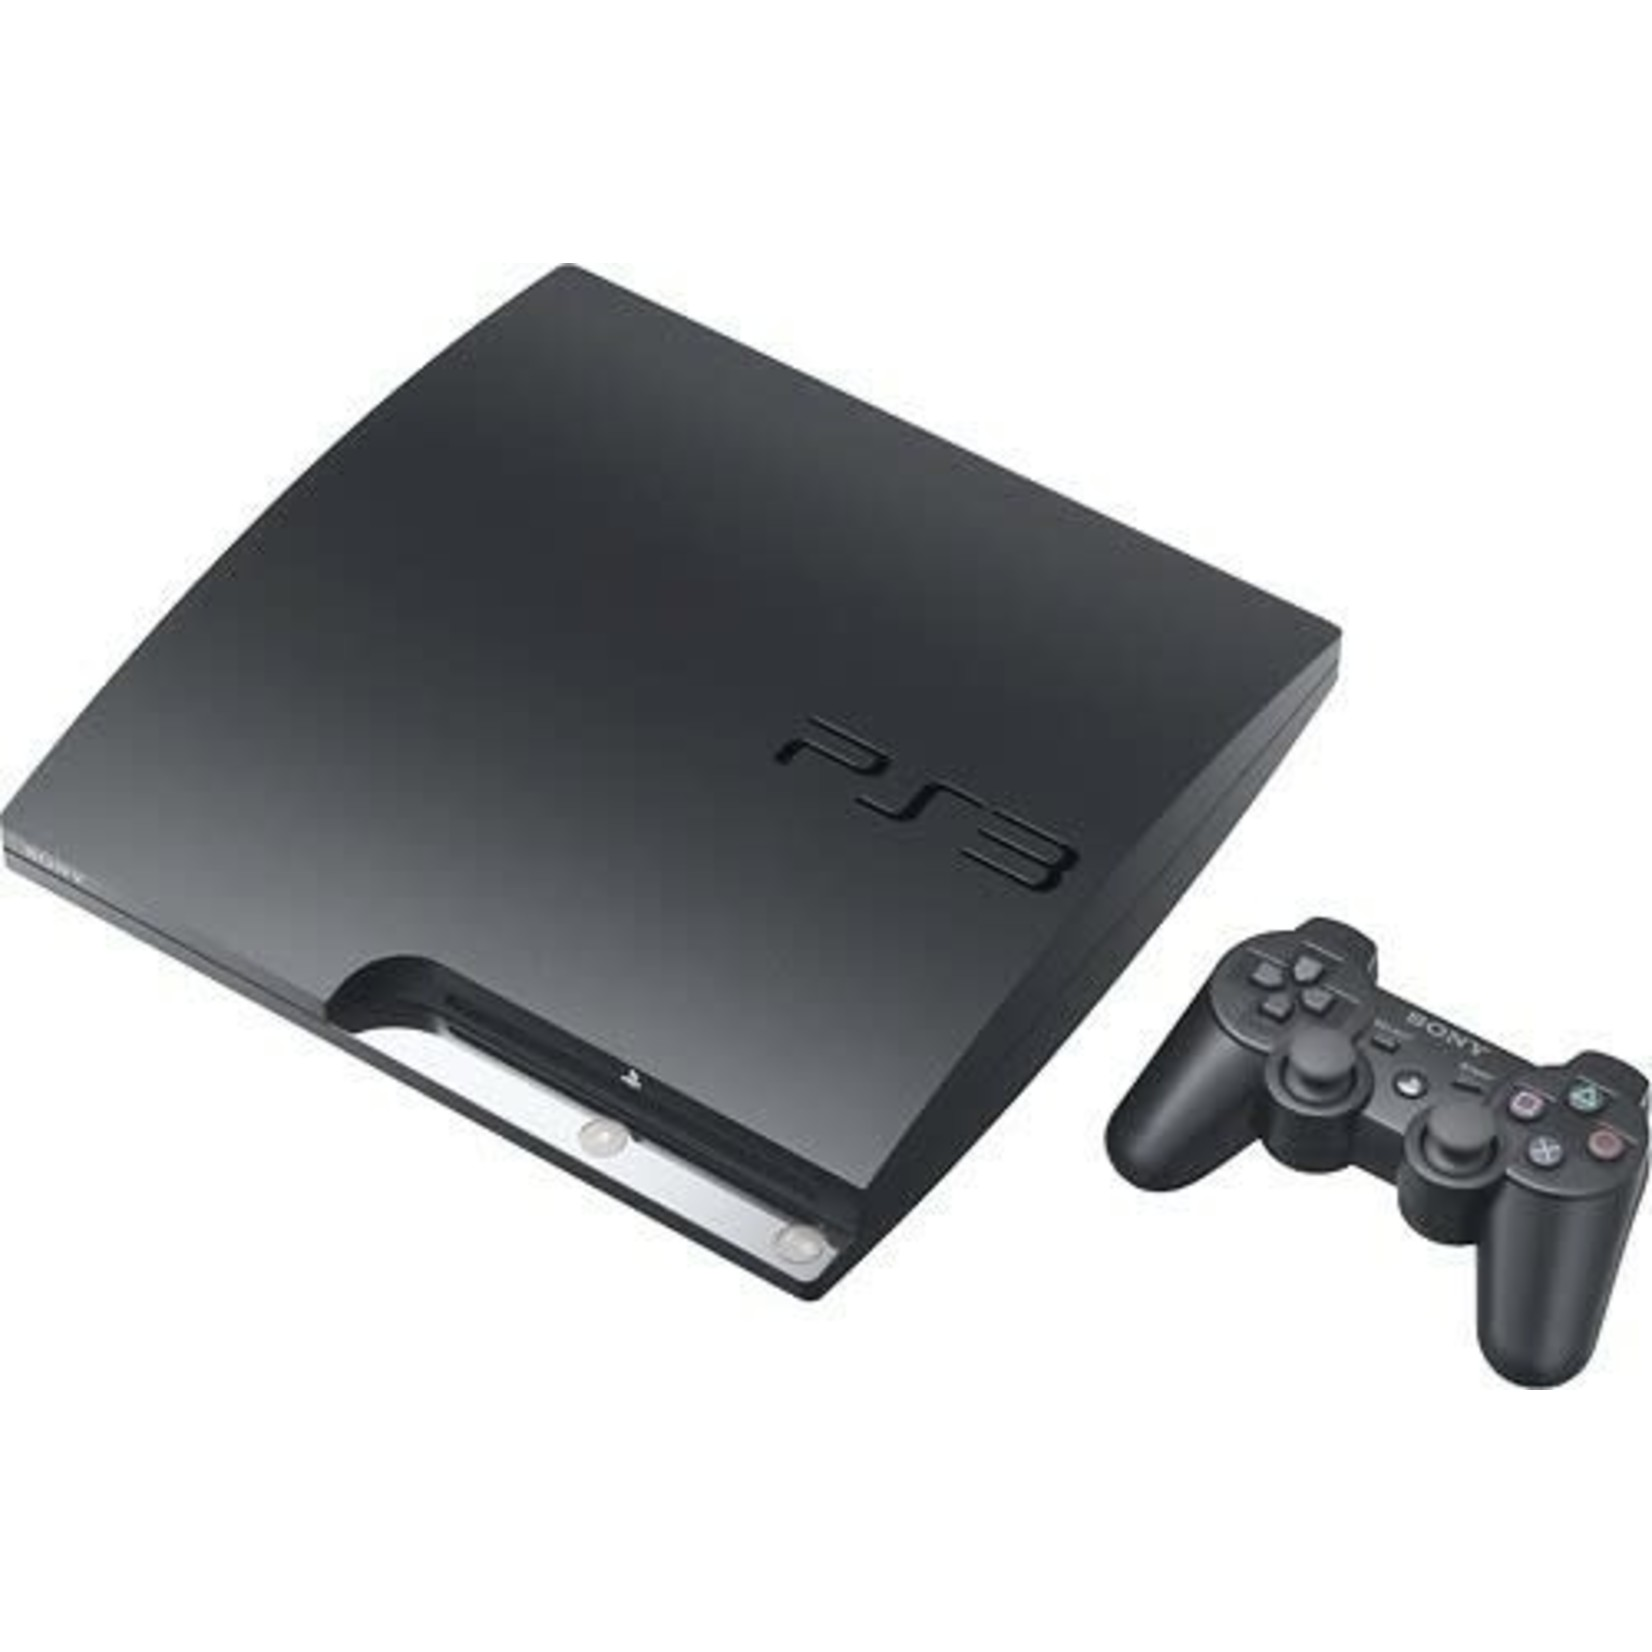 SYSTEM-USED PS3S 160GB